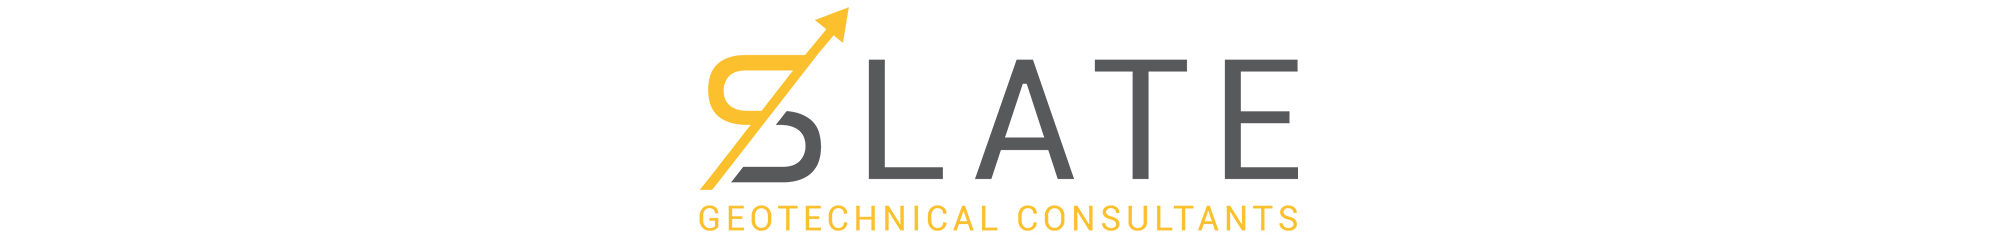 Slate Geotechnical Consultants